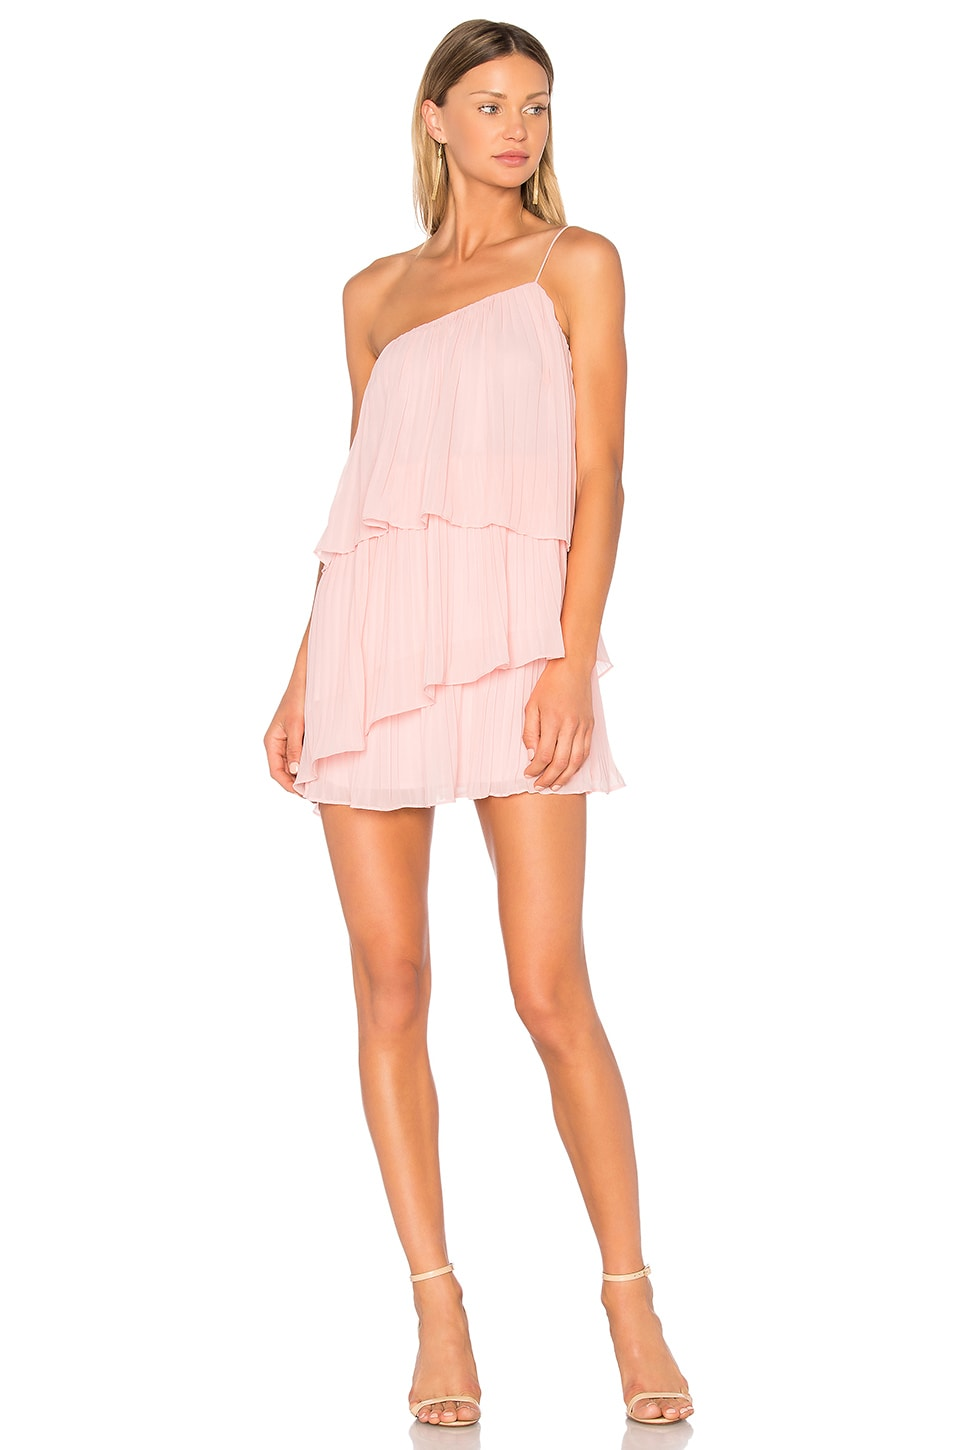 Girlfriend Material Dress             NBD                                                                                                                                         Sale price:                                                                       CA$ 122.17                                                                  Previous price:                                                                       CA$ 269.62 13